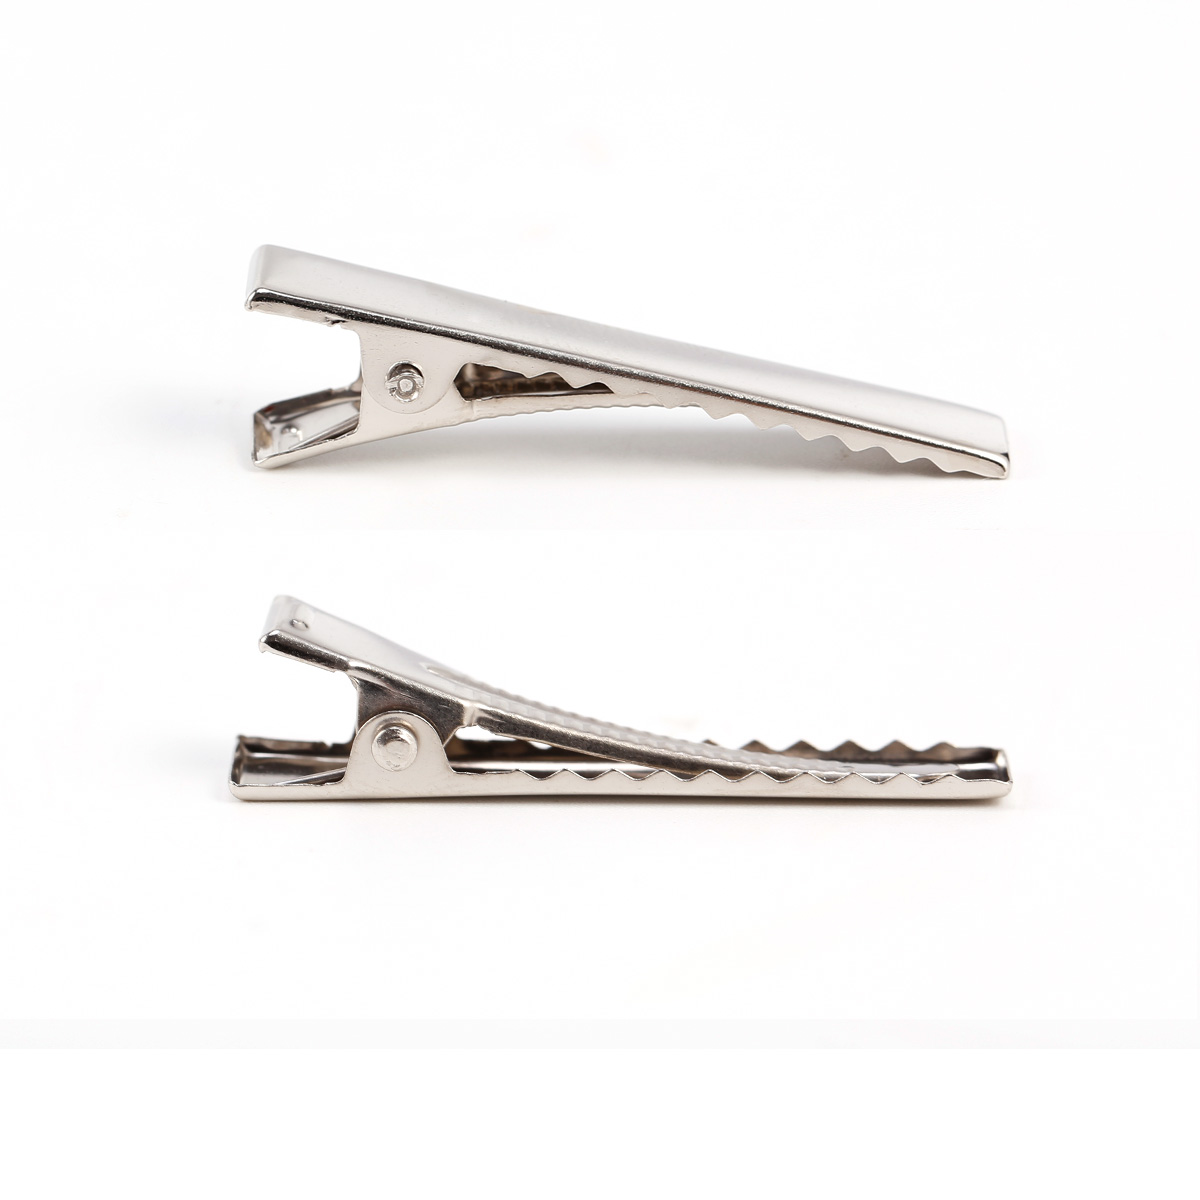 Find great deals on eBay for Crocodile Hair Clips in Styling Accessories for Hair Care and Salons. Shop with confidence.